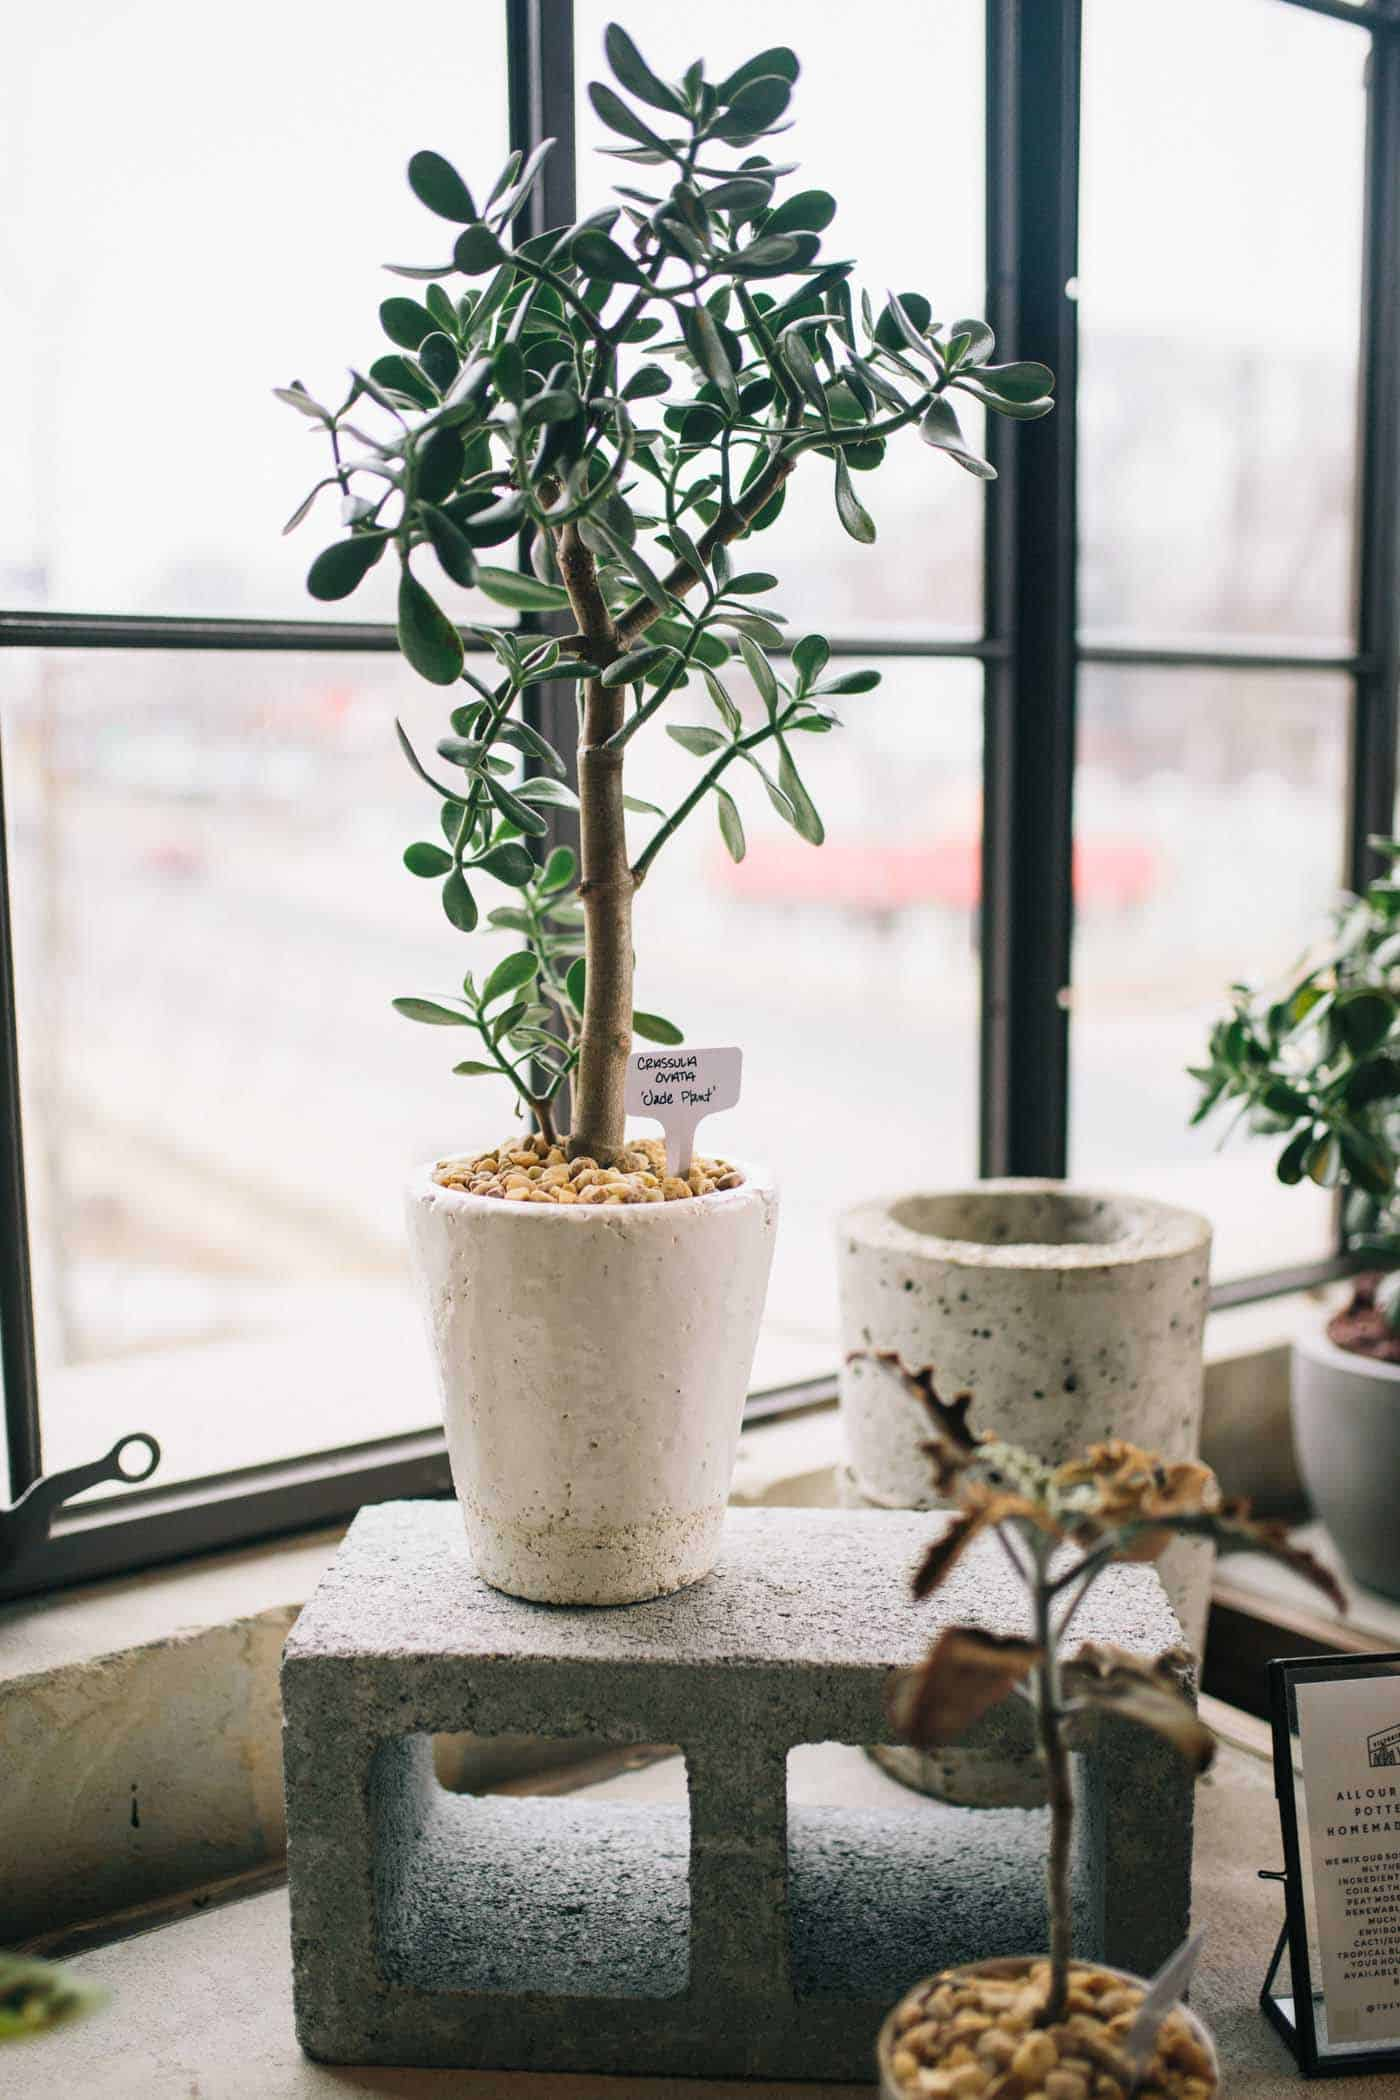 best indoor plants, plants for your home, fiddle leaf fig tips - My Style Vita @mystylevita